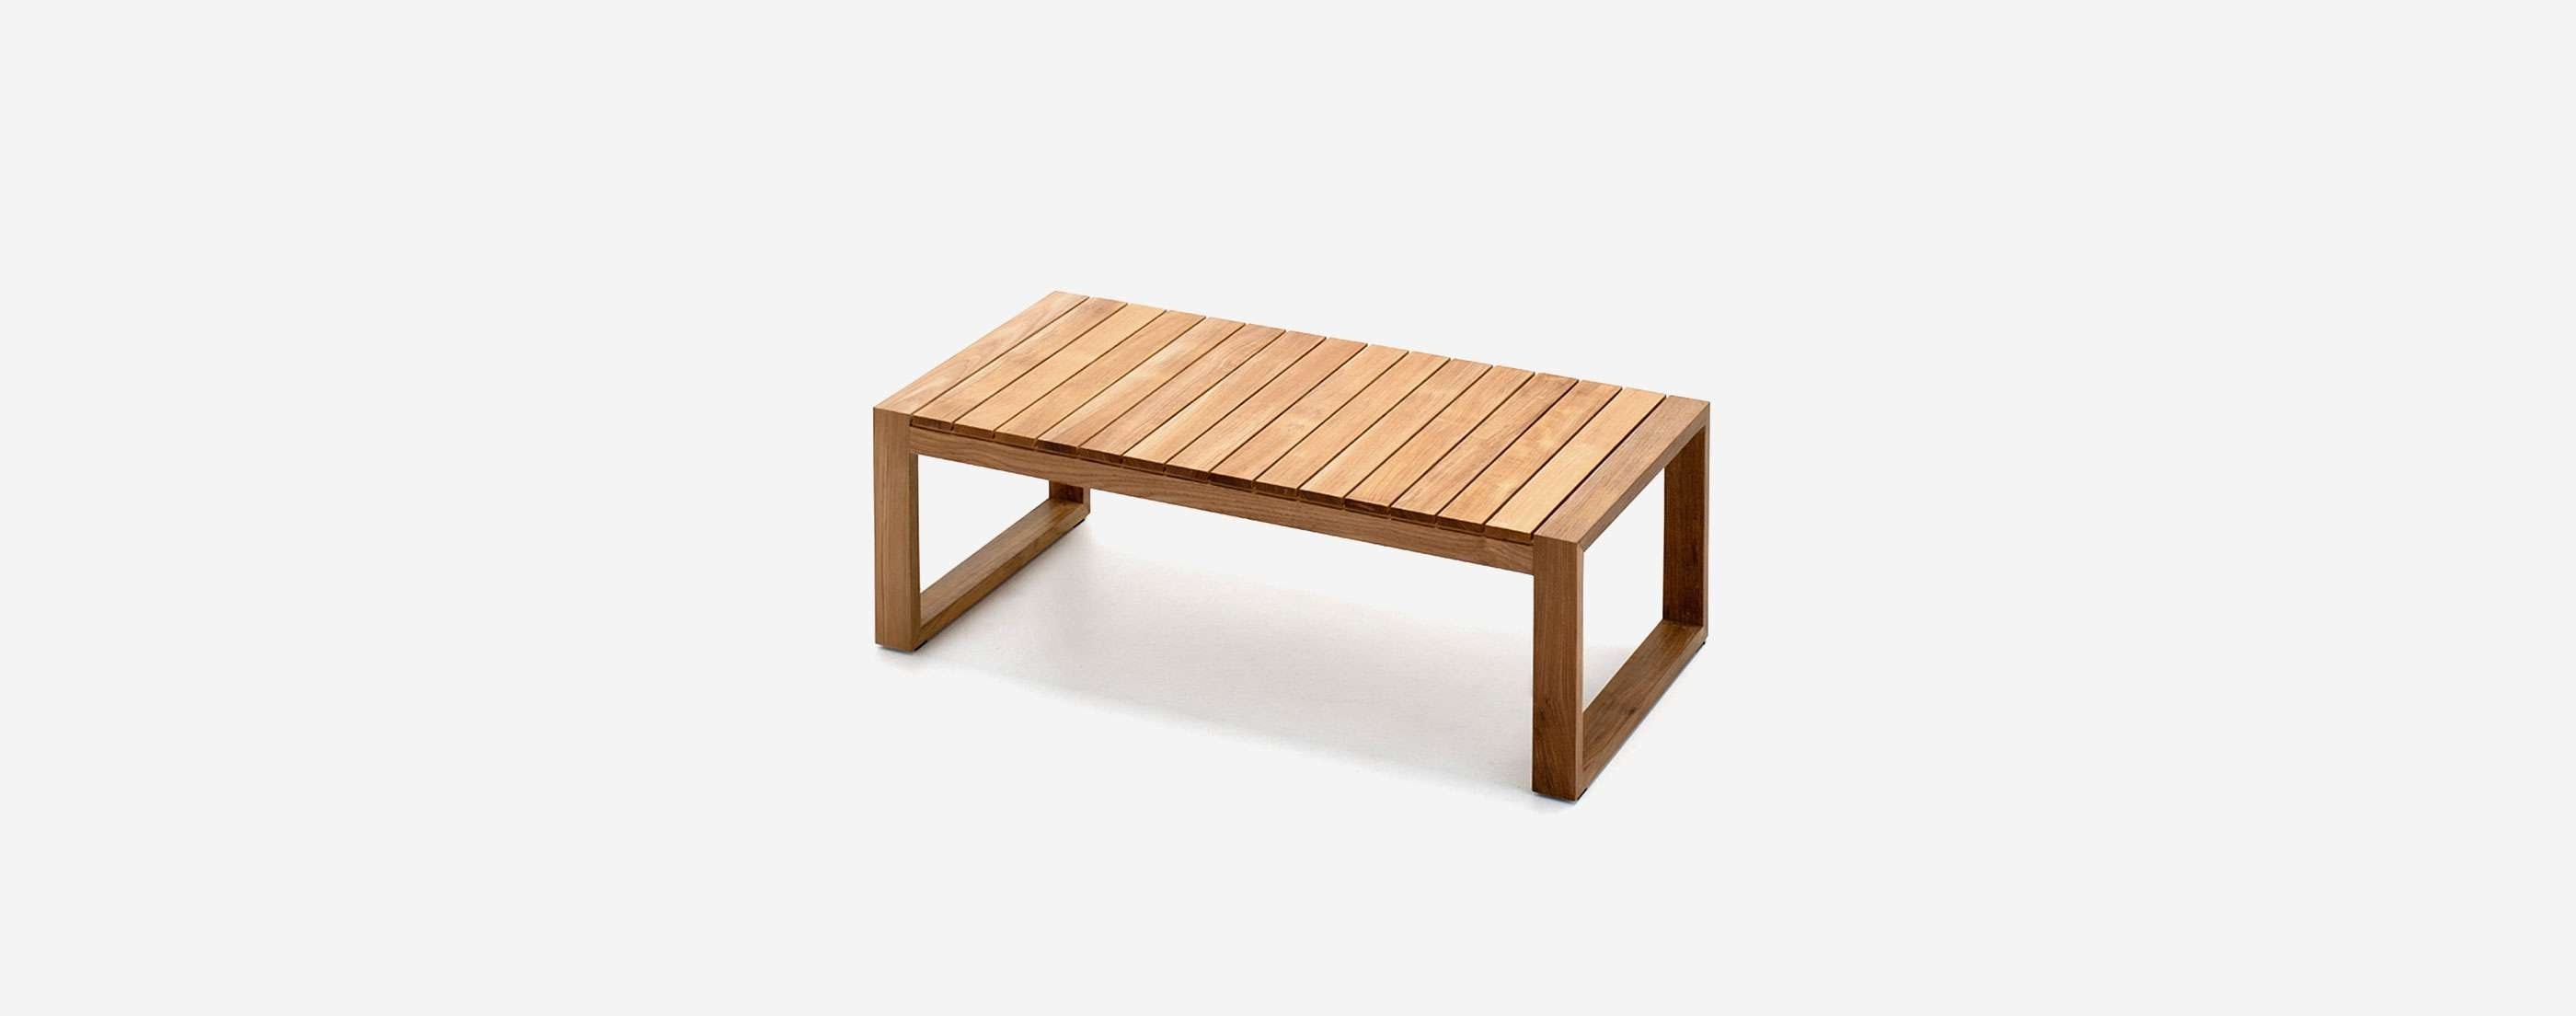 Verona Coffee Table – Jati Furniture With Current Verona Coffee Tables (Gallery 13 of 20)